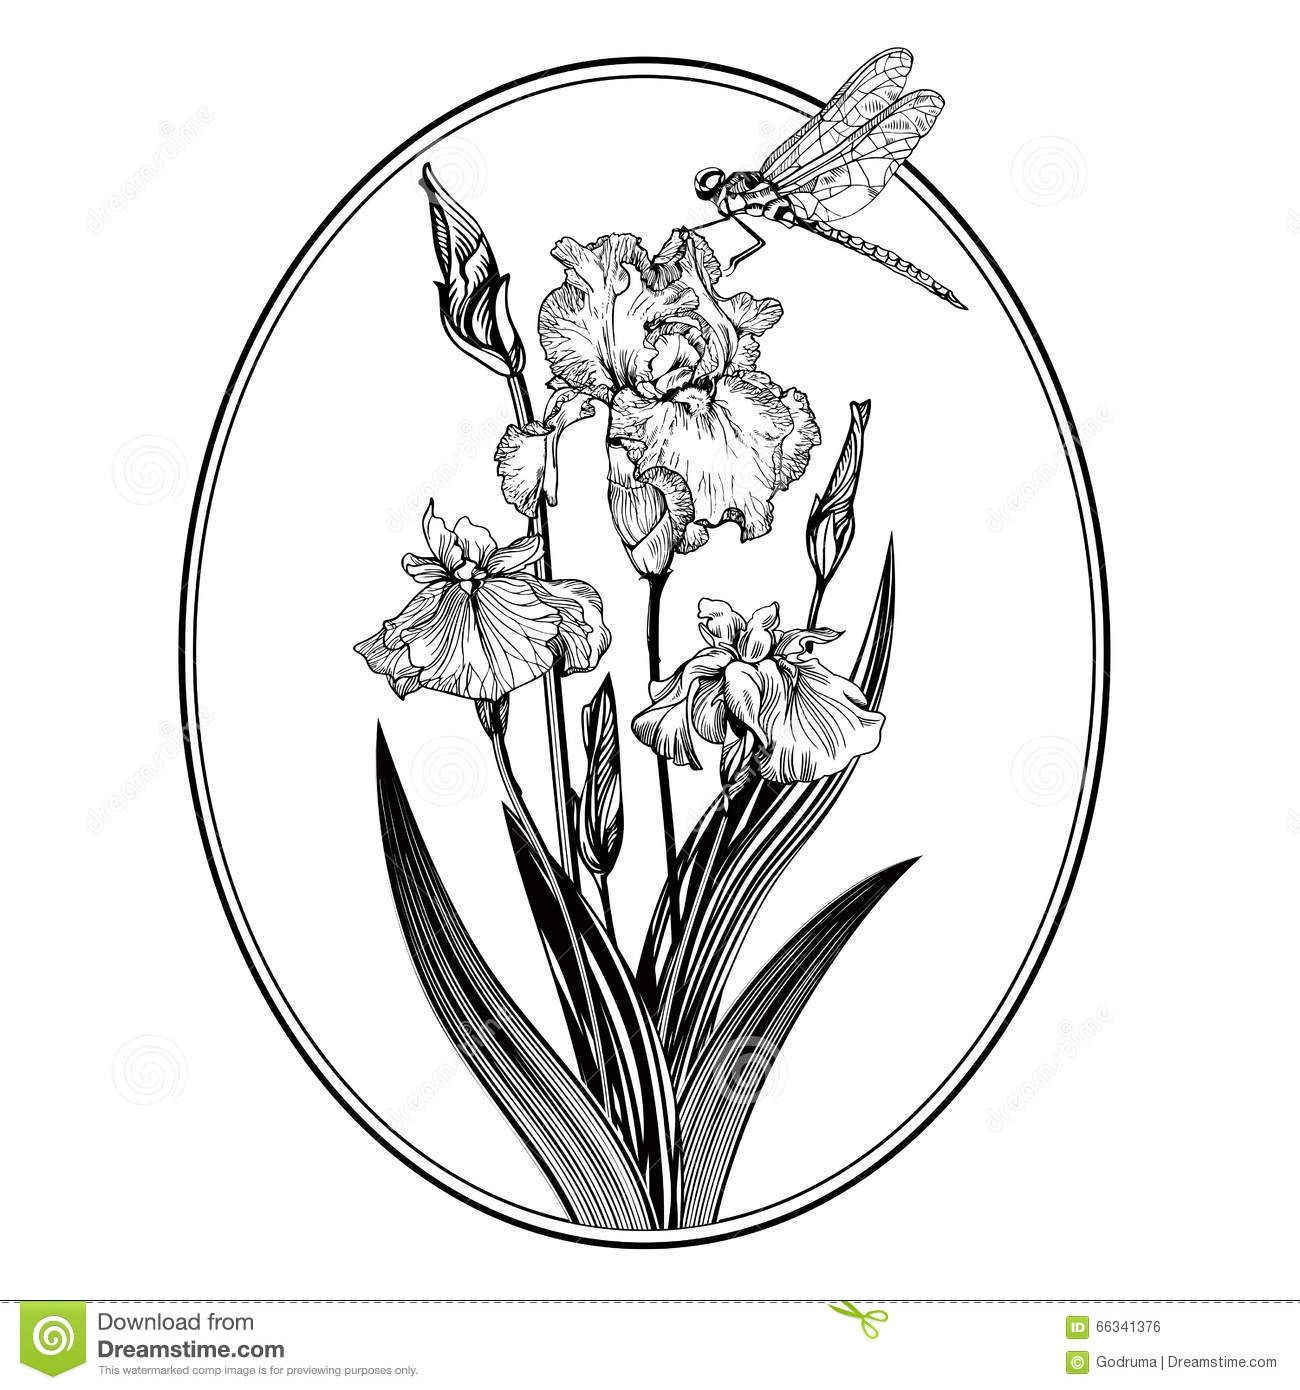 Vintage Elegant Flowers Black And White Vector Illustration Iris Flower Botany Download From Over 50 Millio Iris Flowers Elegant Flowers Gladiolus Flower